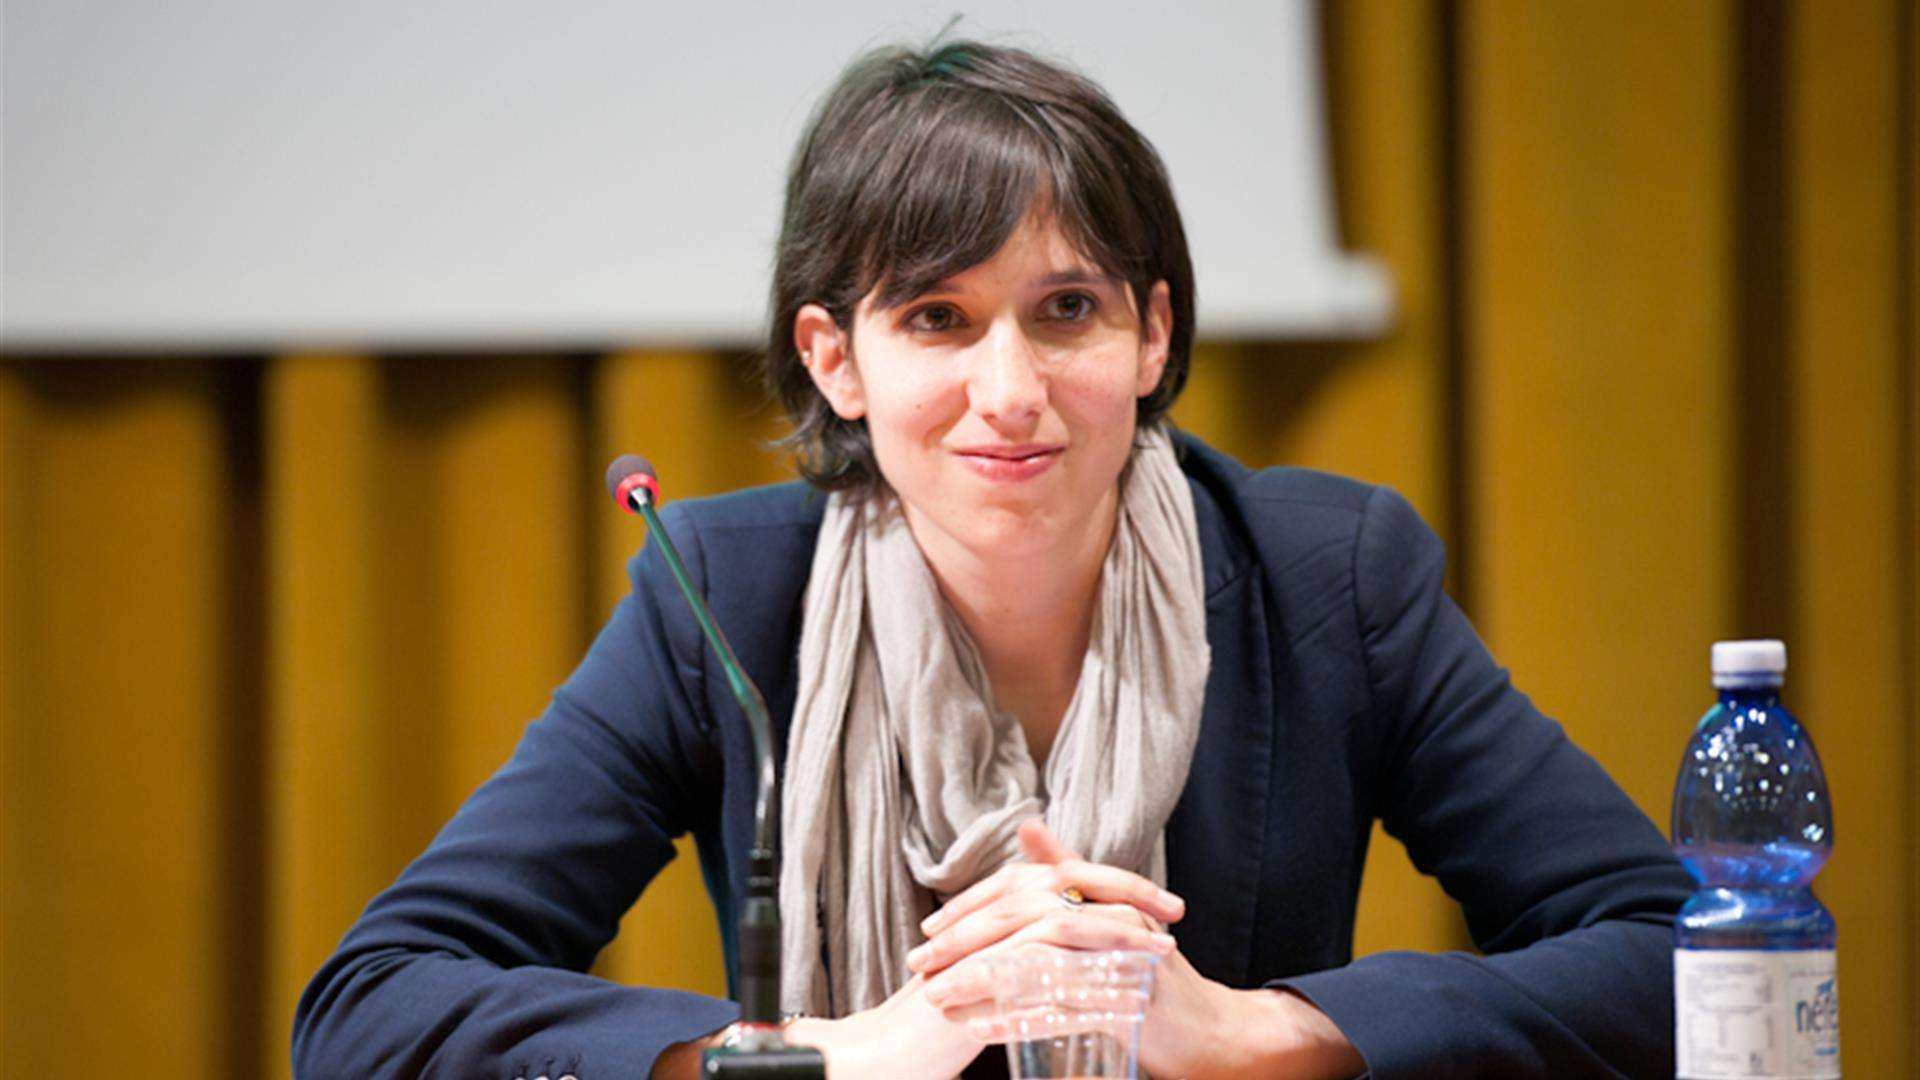 How to fight gender violence, interview with MEP Elly Schlein